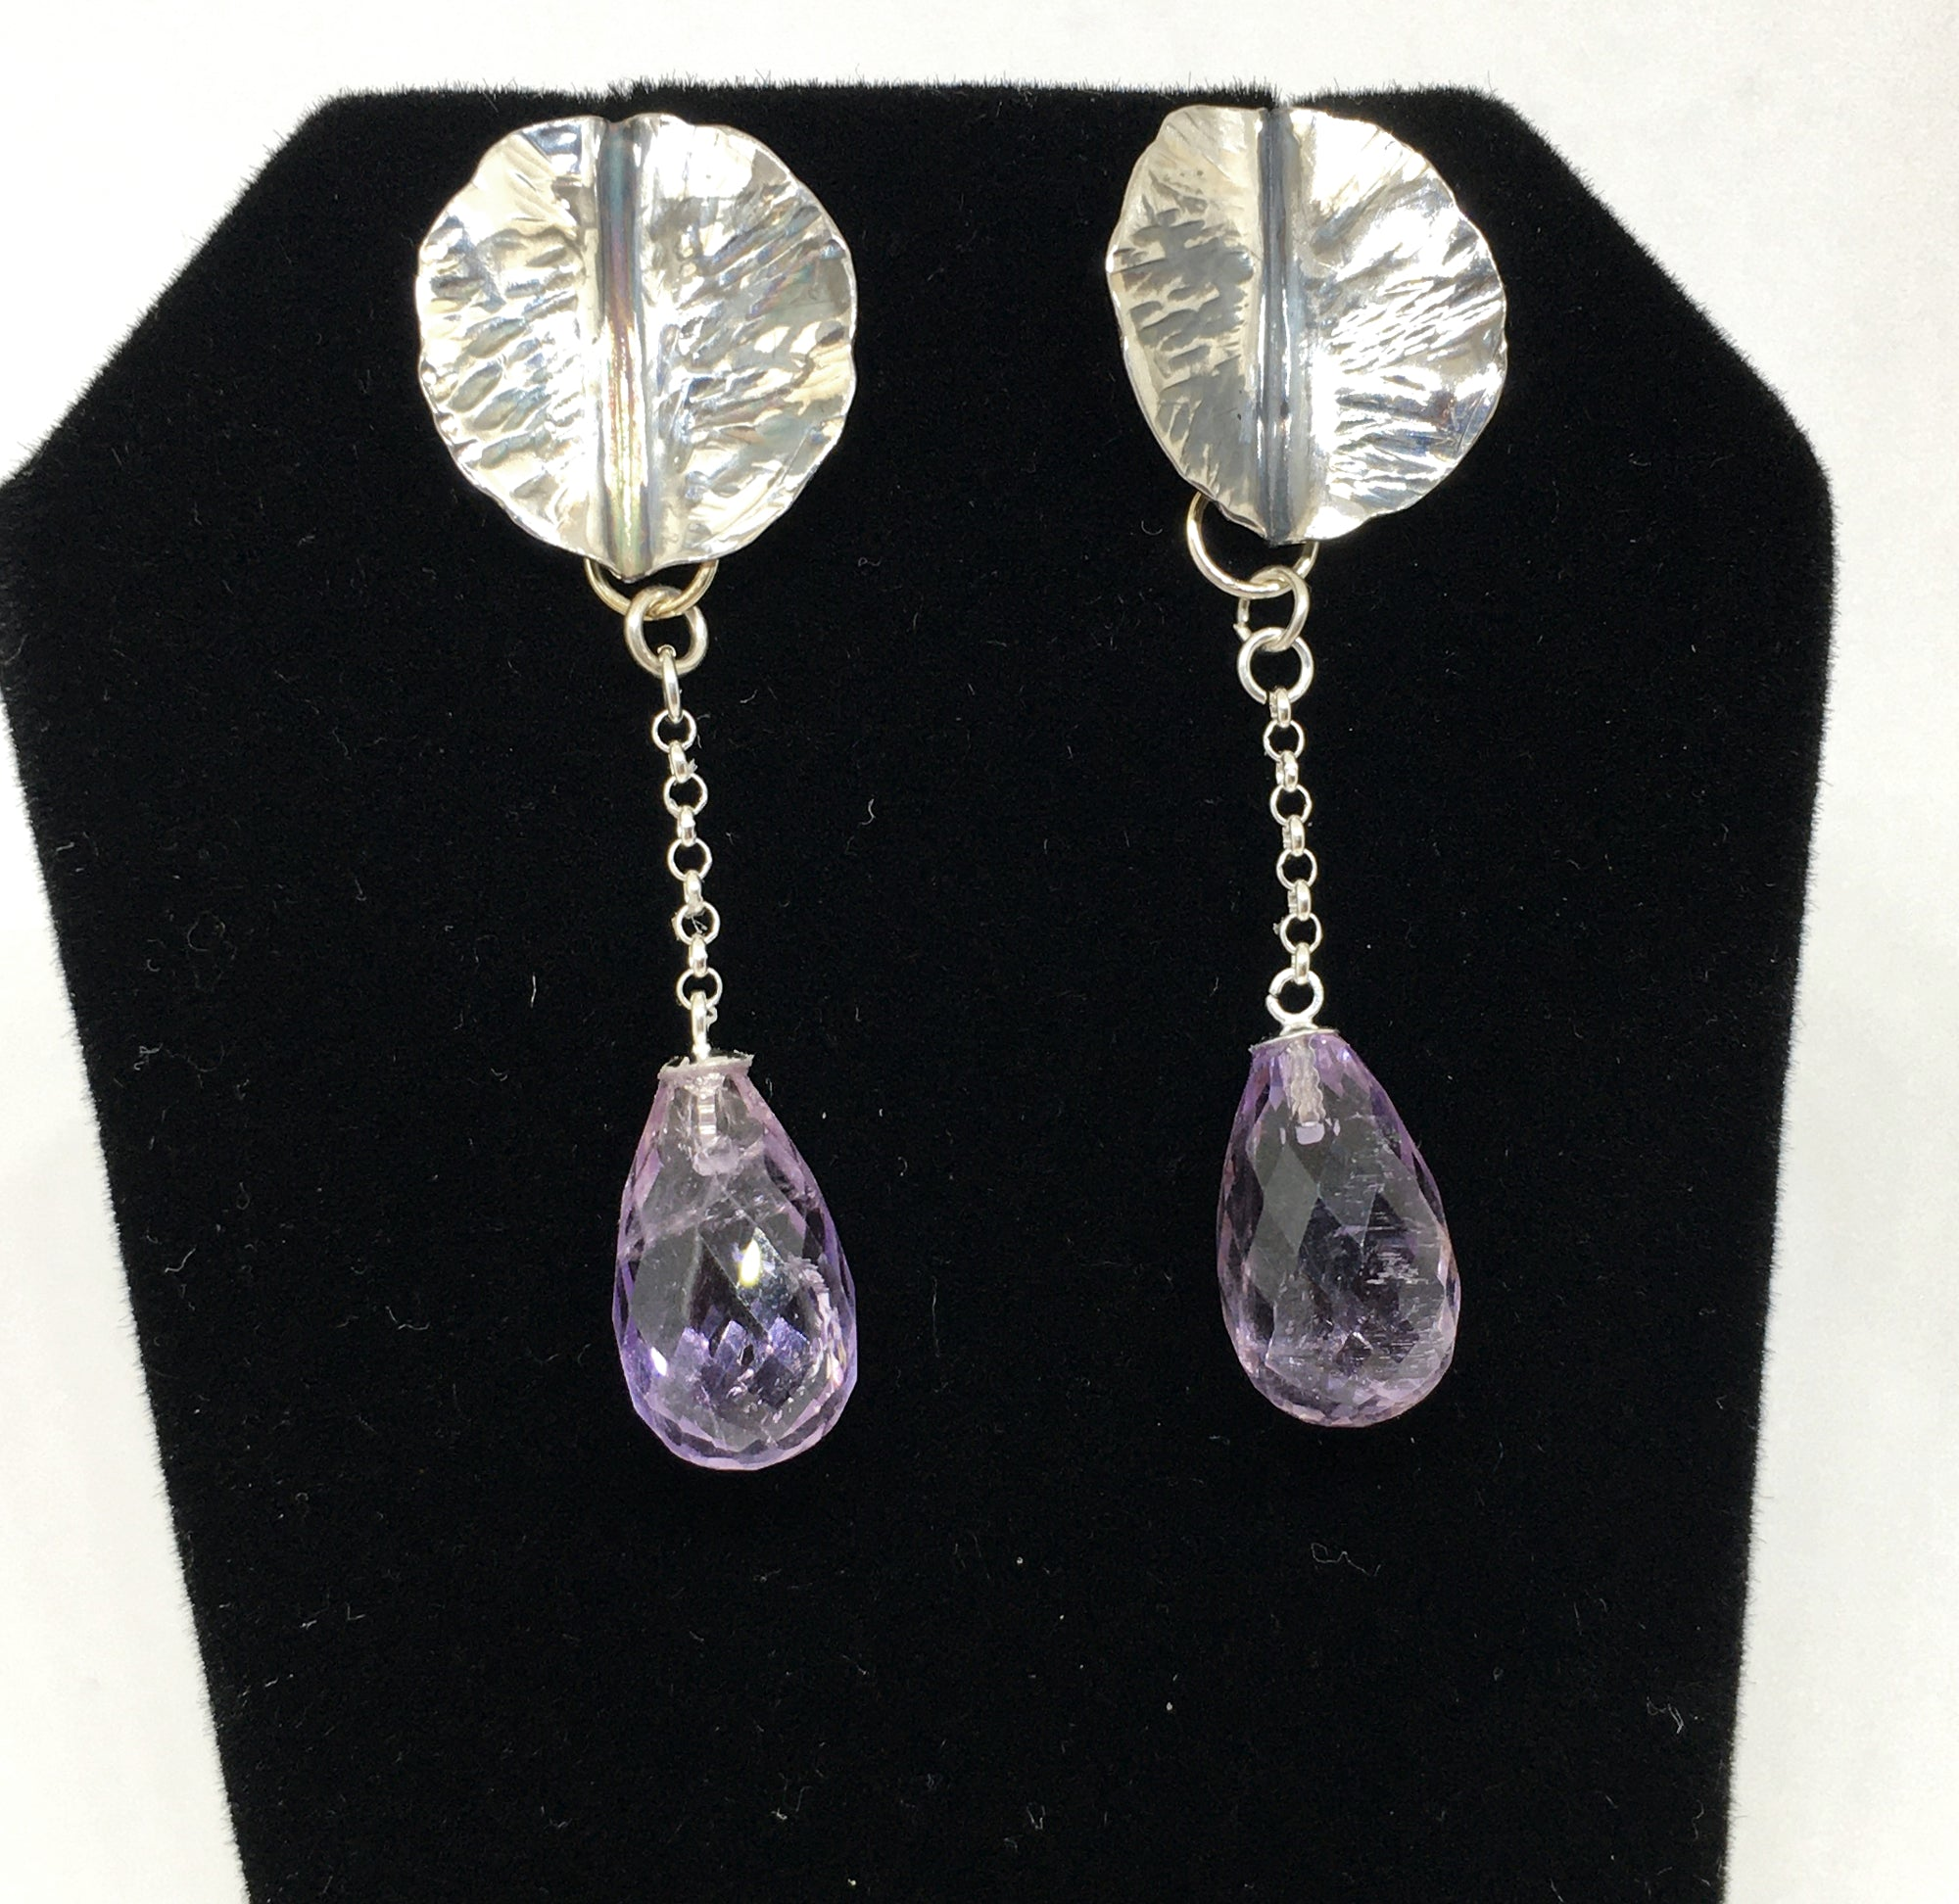 Hand Forged Leaf Earrings with Amethyst Drops